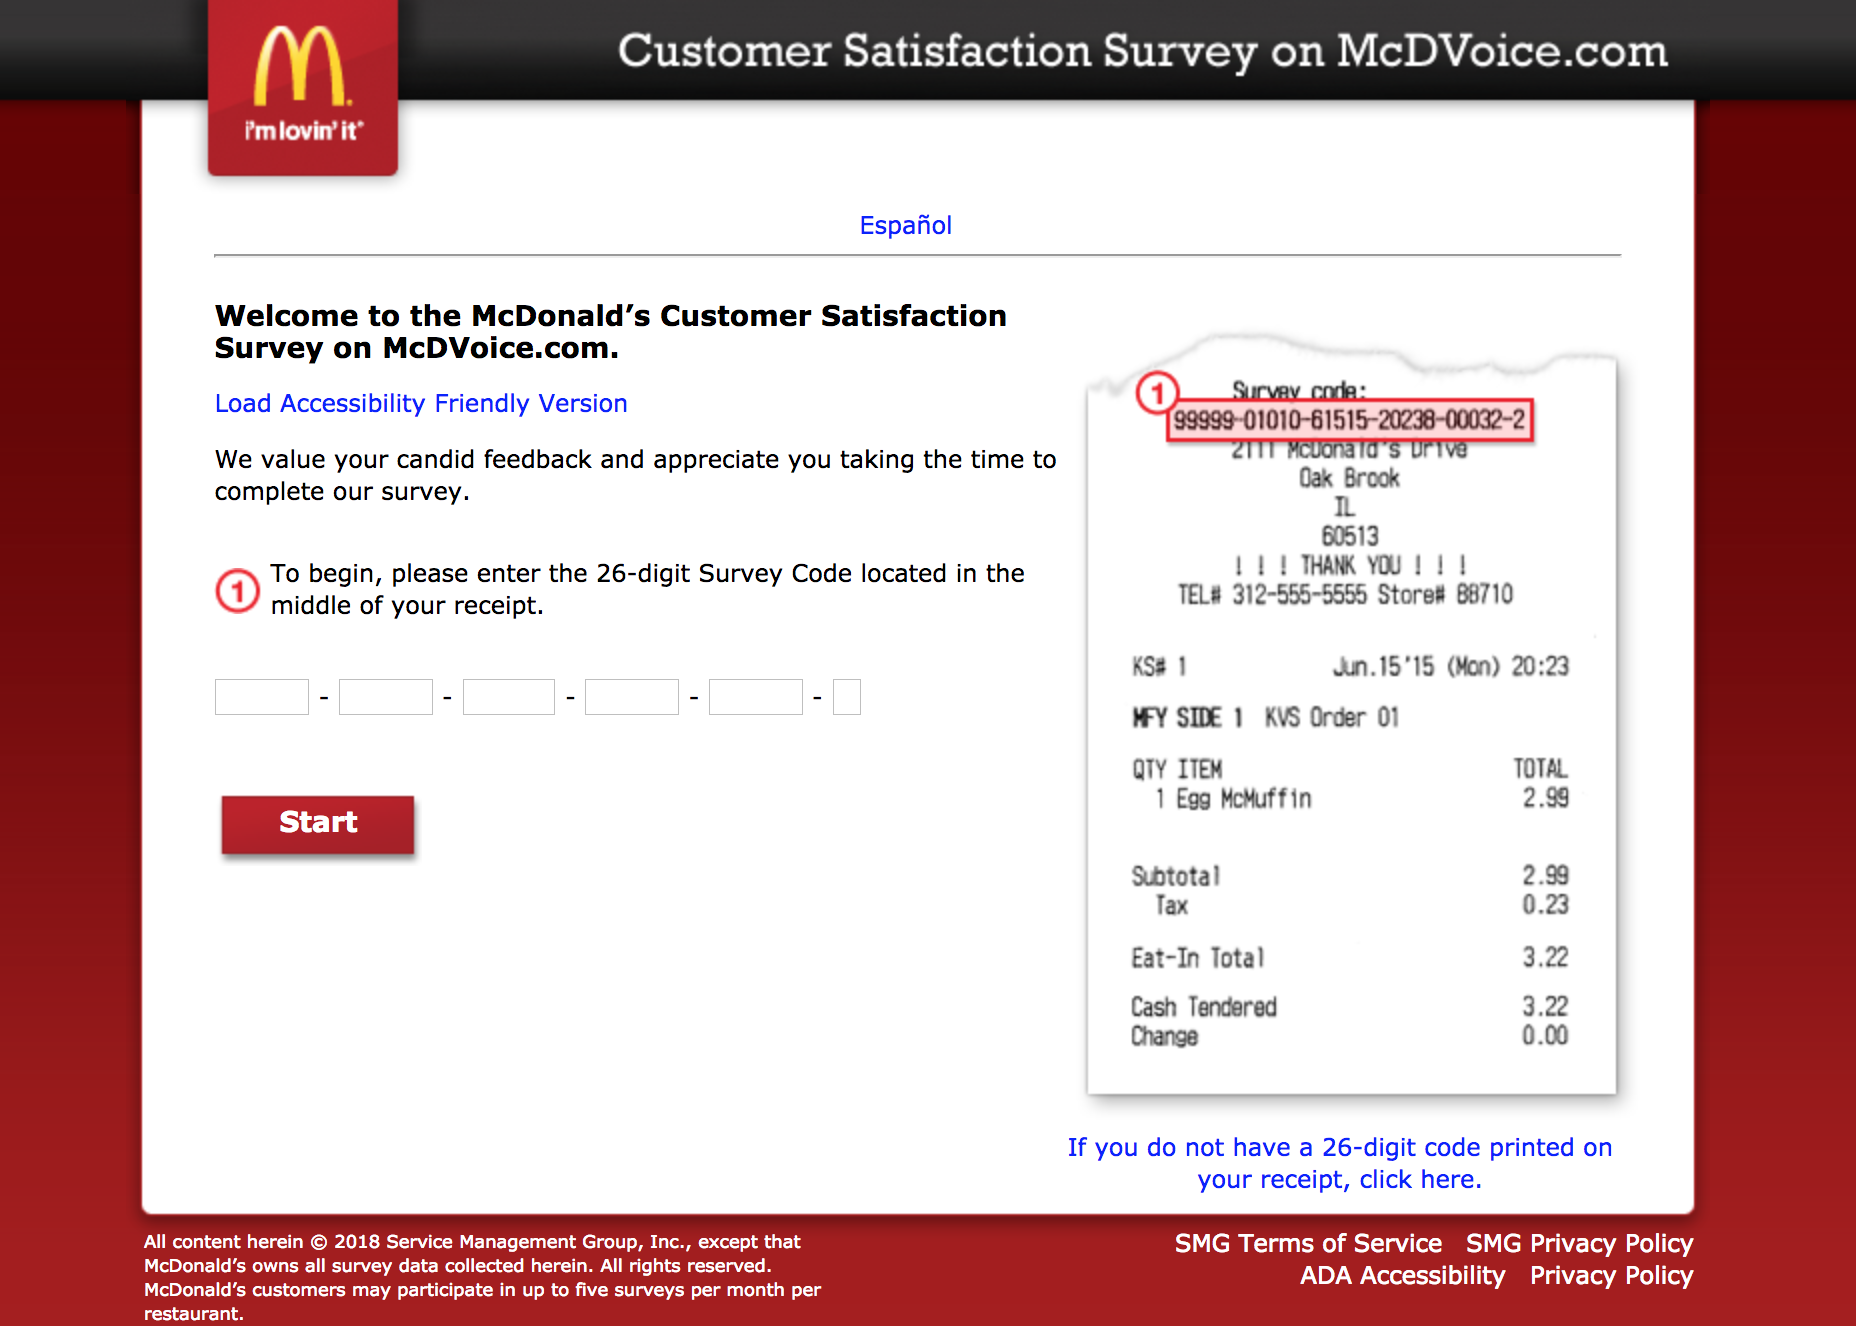 mcdvoice.com homepage